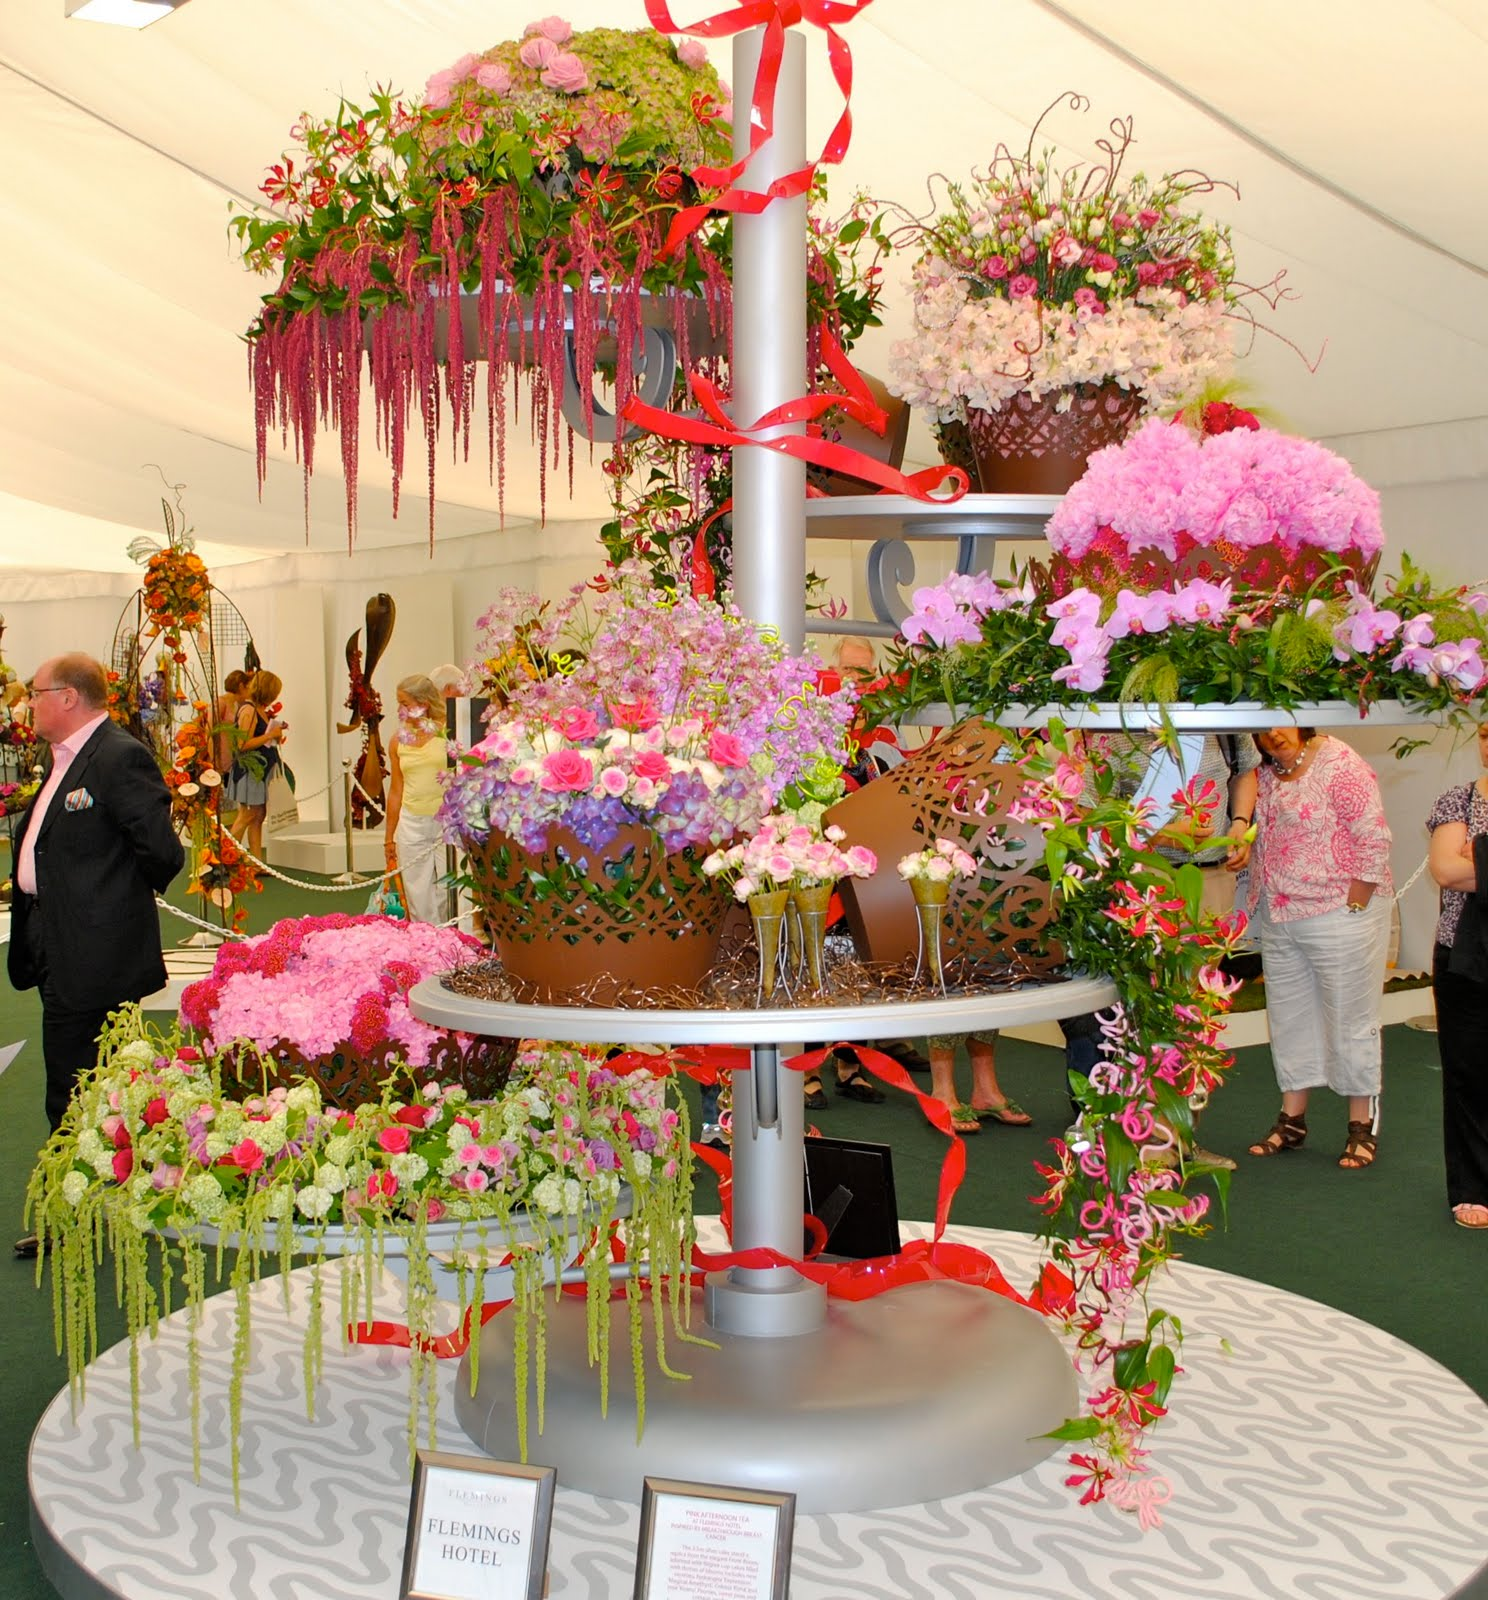 The 21st century housewife an afternoon tea extravaganza for Flower arrangements for parties